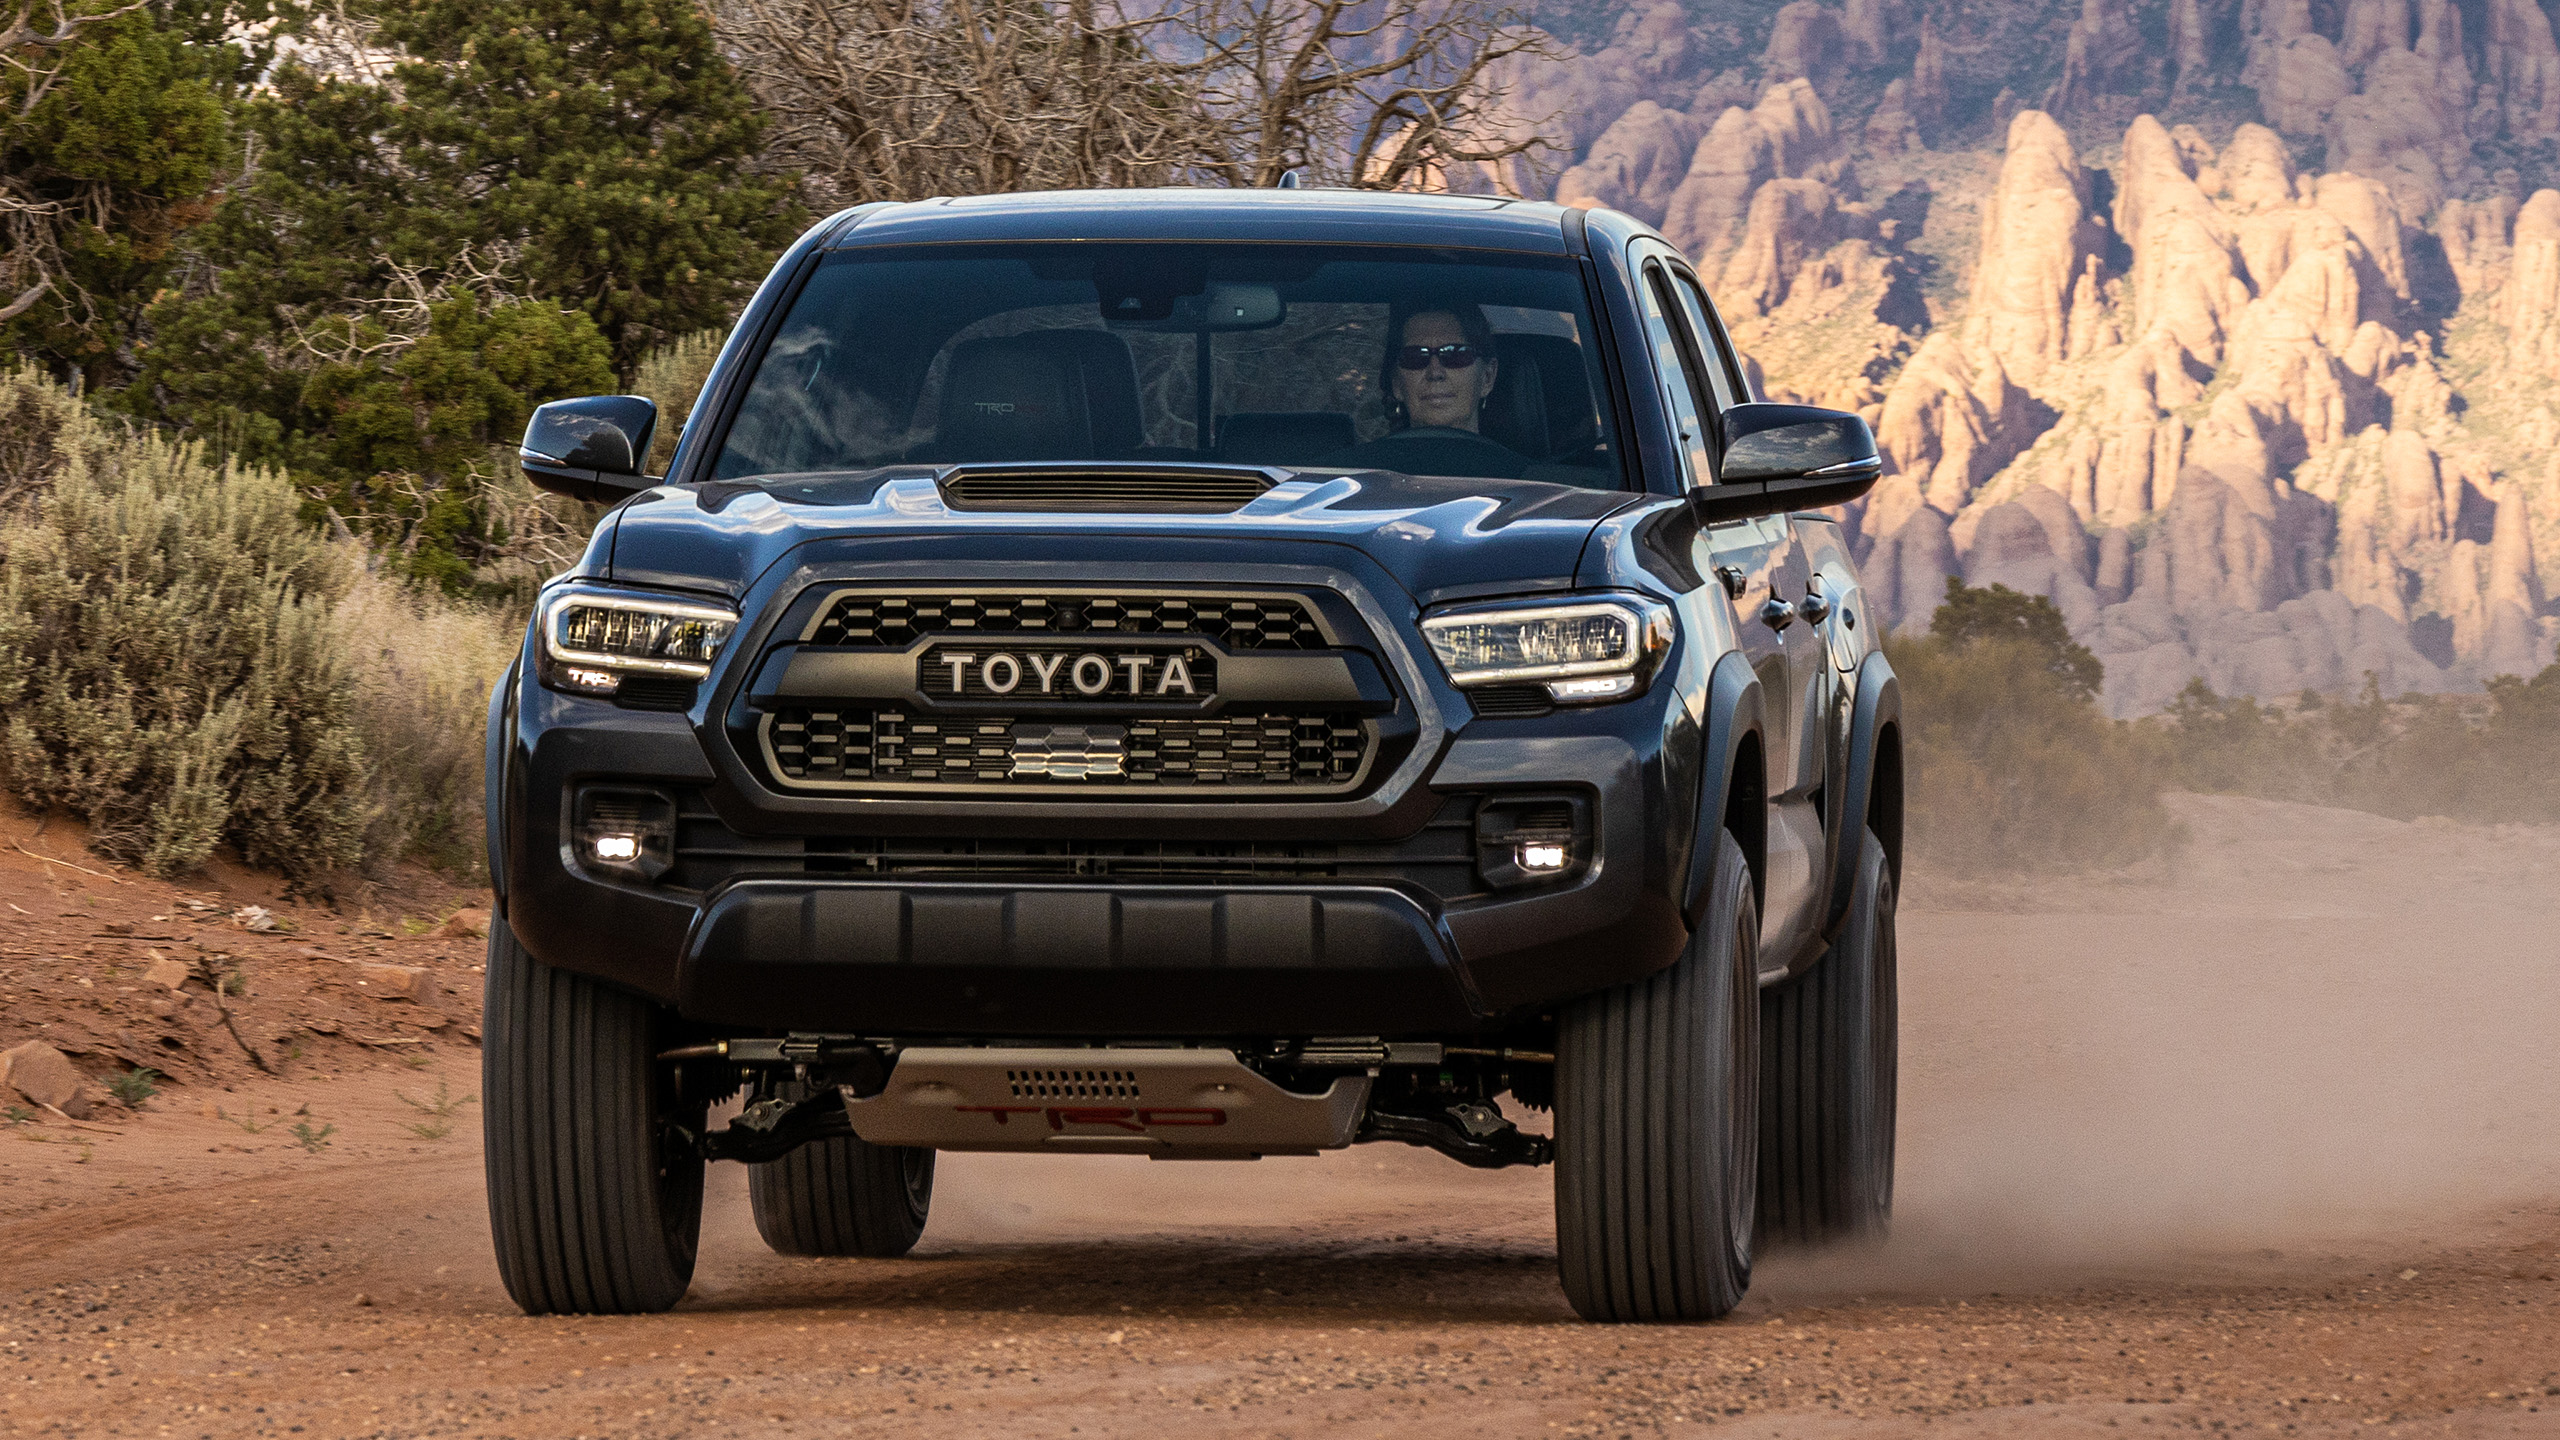 2020 Toyota Tacoma Review Prices Specs Features And Photos Autoblog